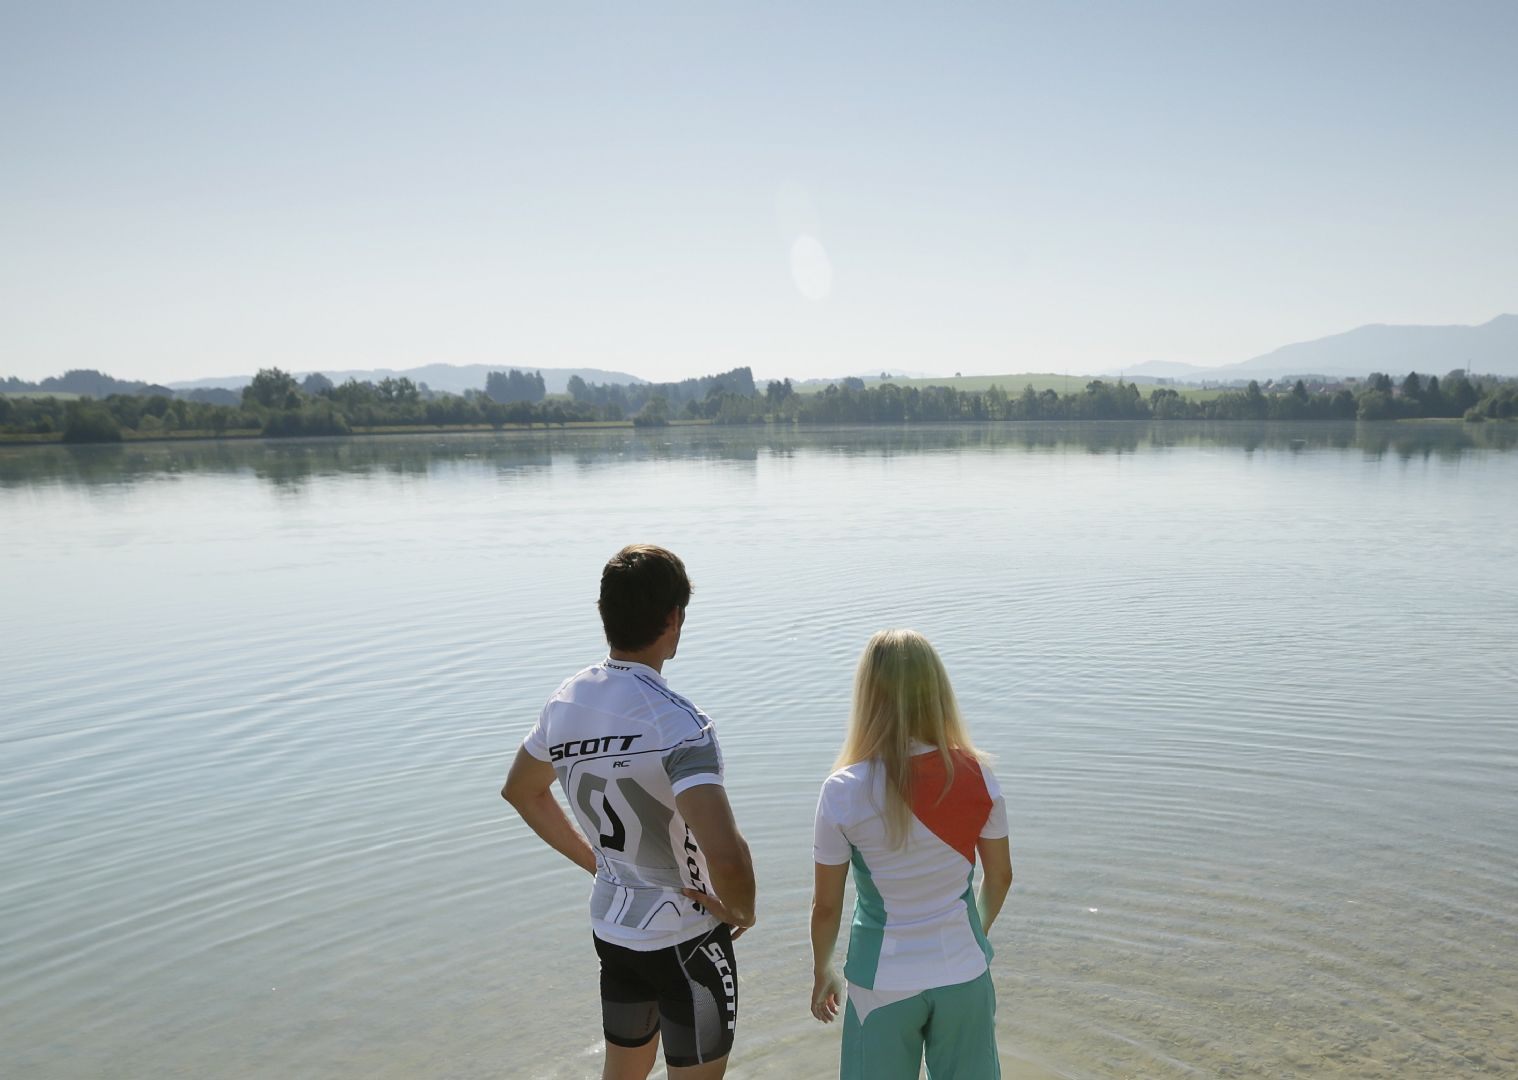 leisurecyclingbavaria.jpg - Germany - Bavarian Lakes - Leisure Cycling